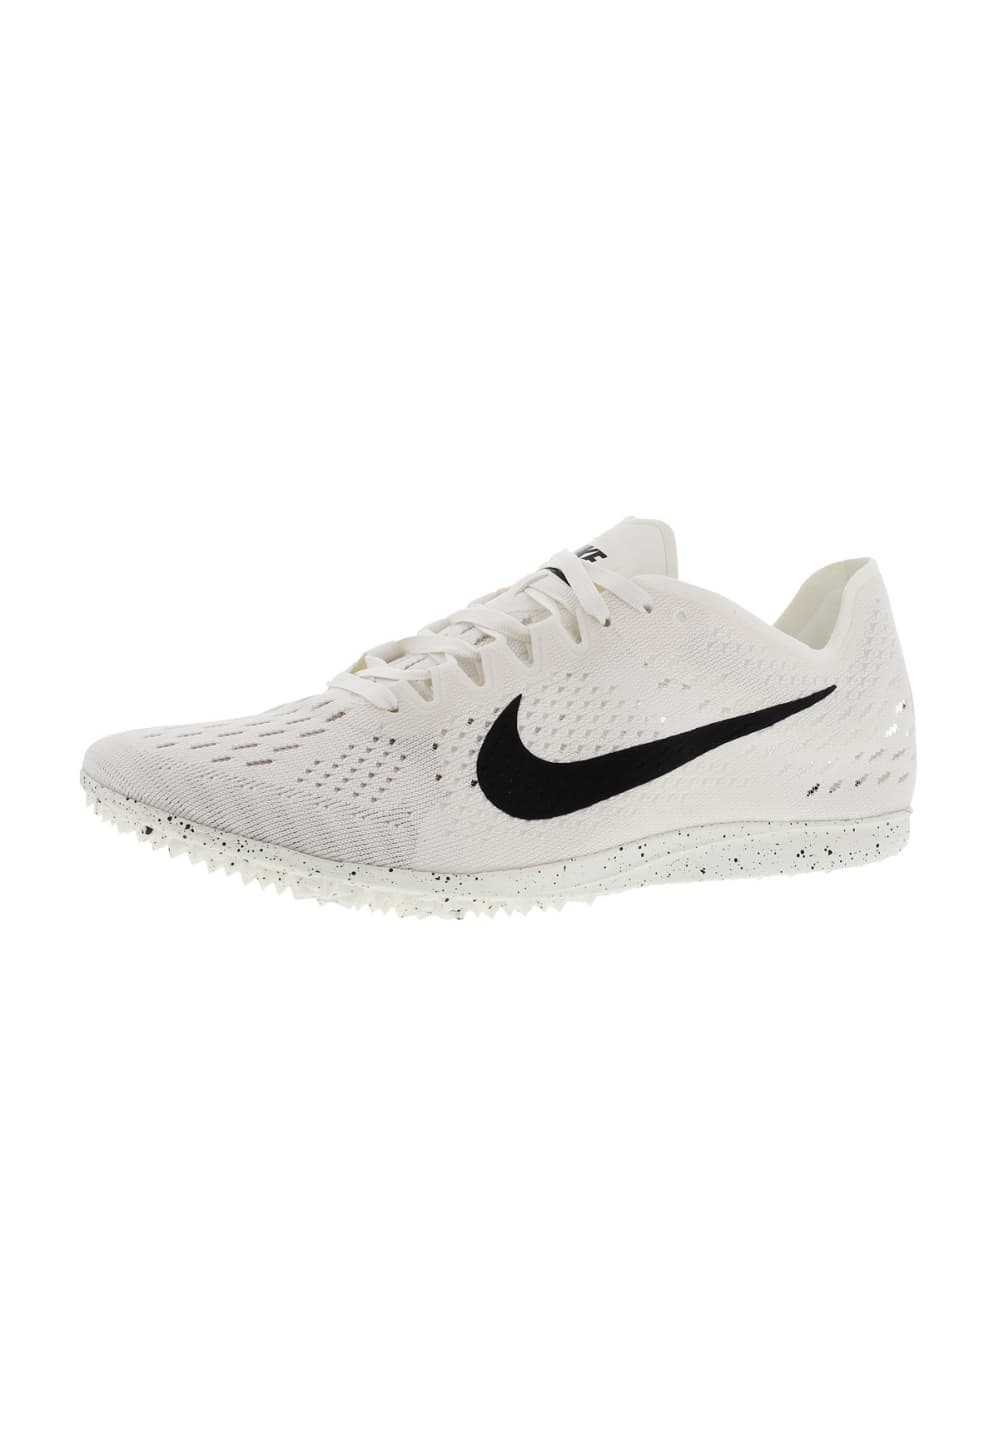 super popular 0dce9 60a3a Next. -60%. Nike. Zoom Matumbo ...